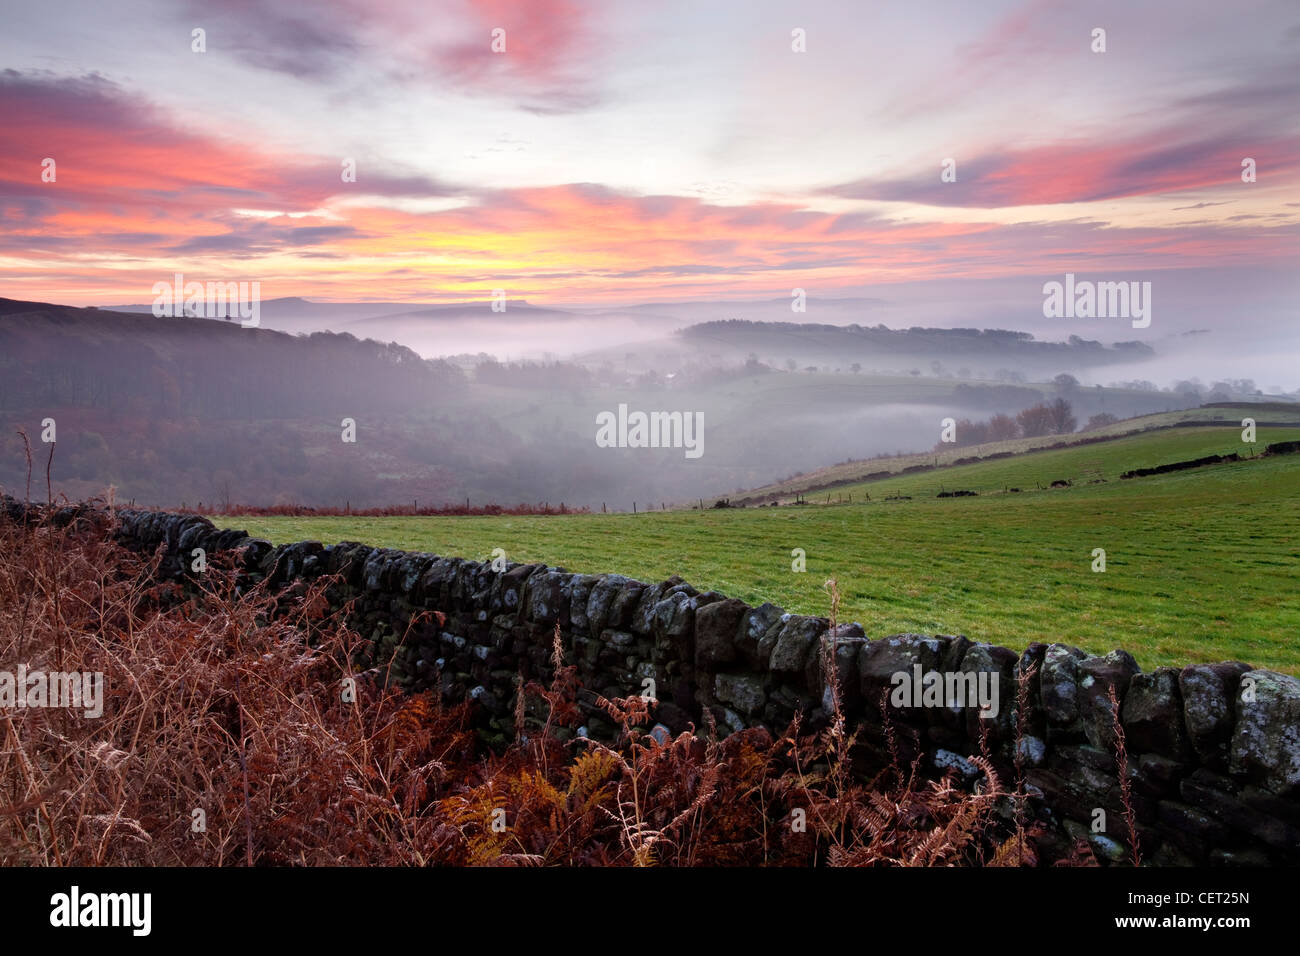 Autumn morning mist over the village of Hathersage in the Peak District National Park. - Stock Image